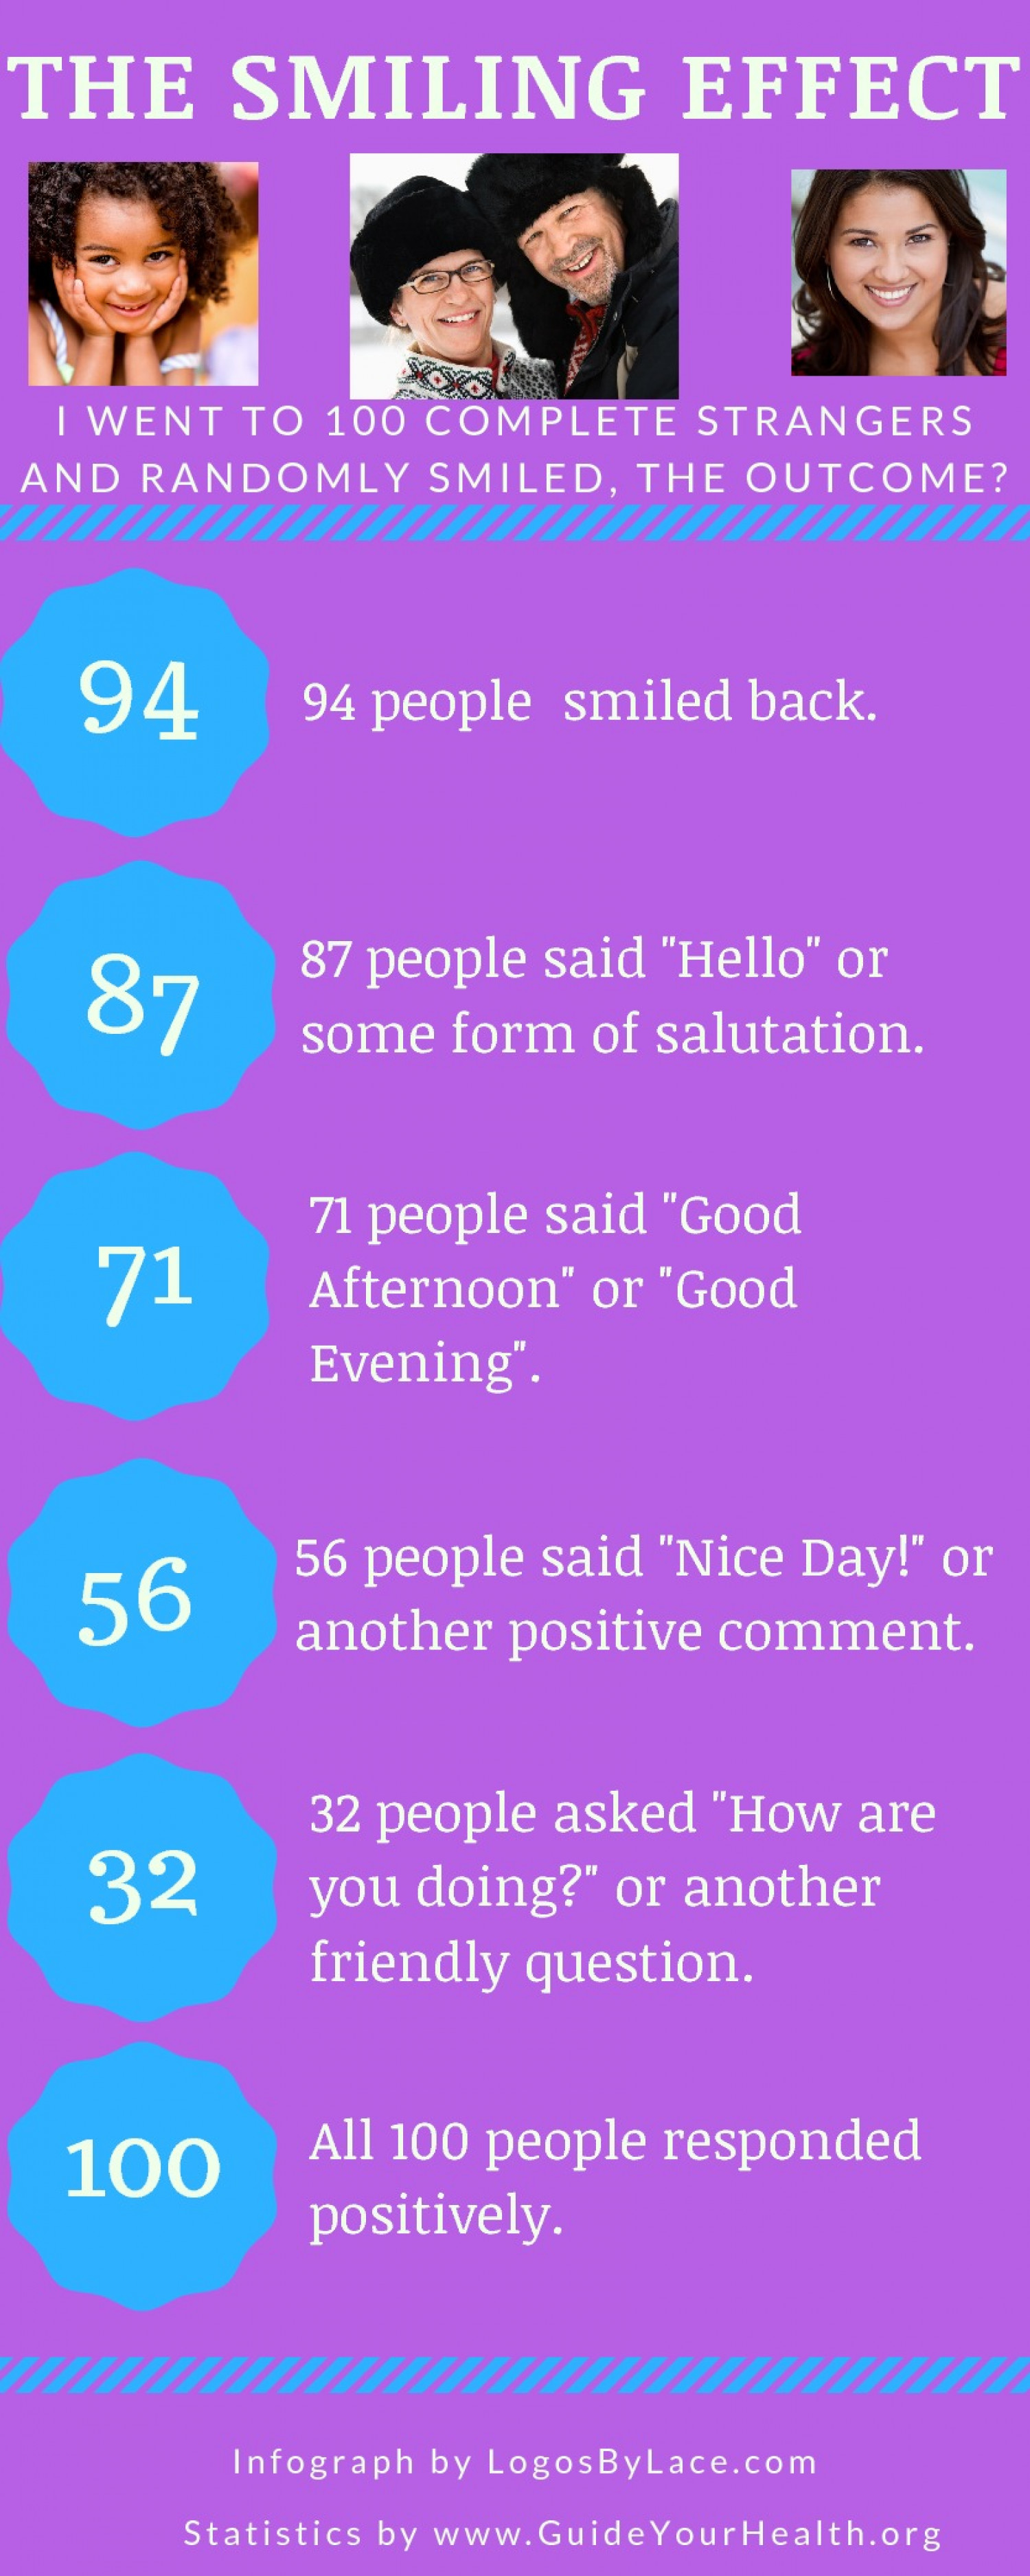 Smiling Effect On Health and Happiness Infographic